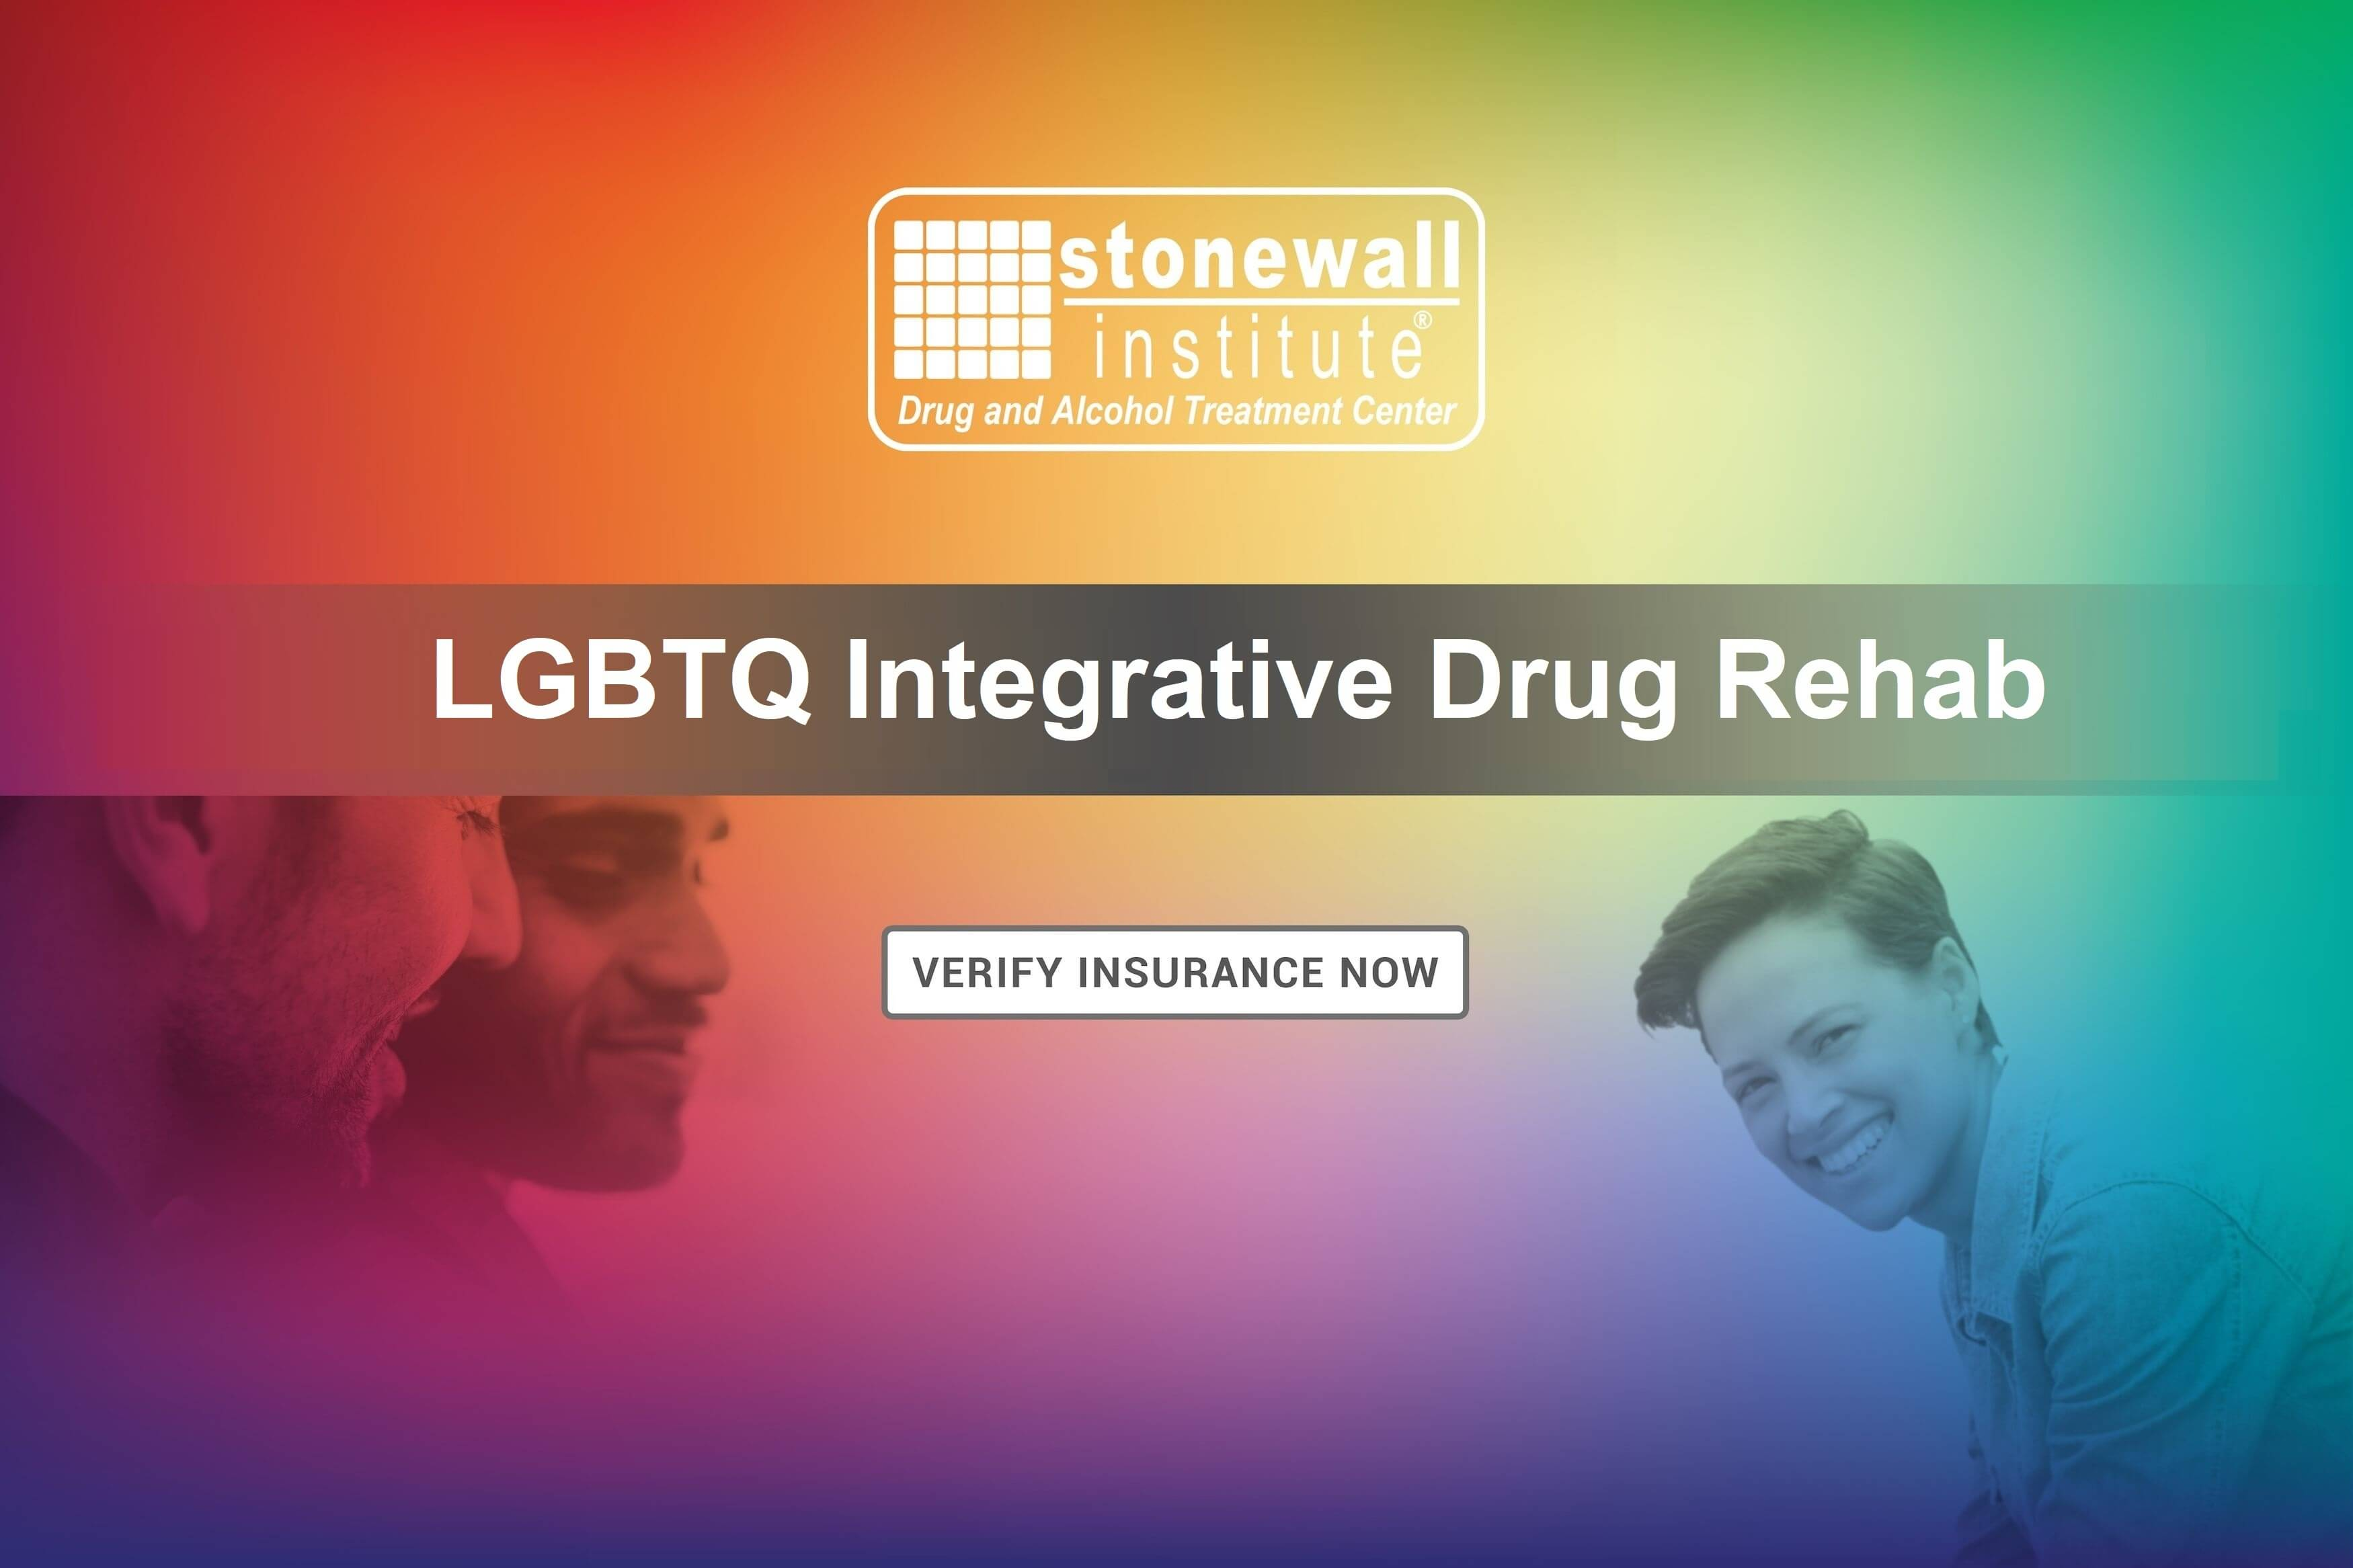 LGBTQI+ Integrative Drug Rehab